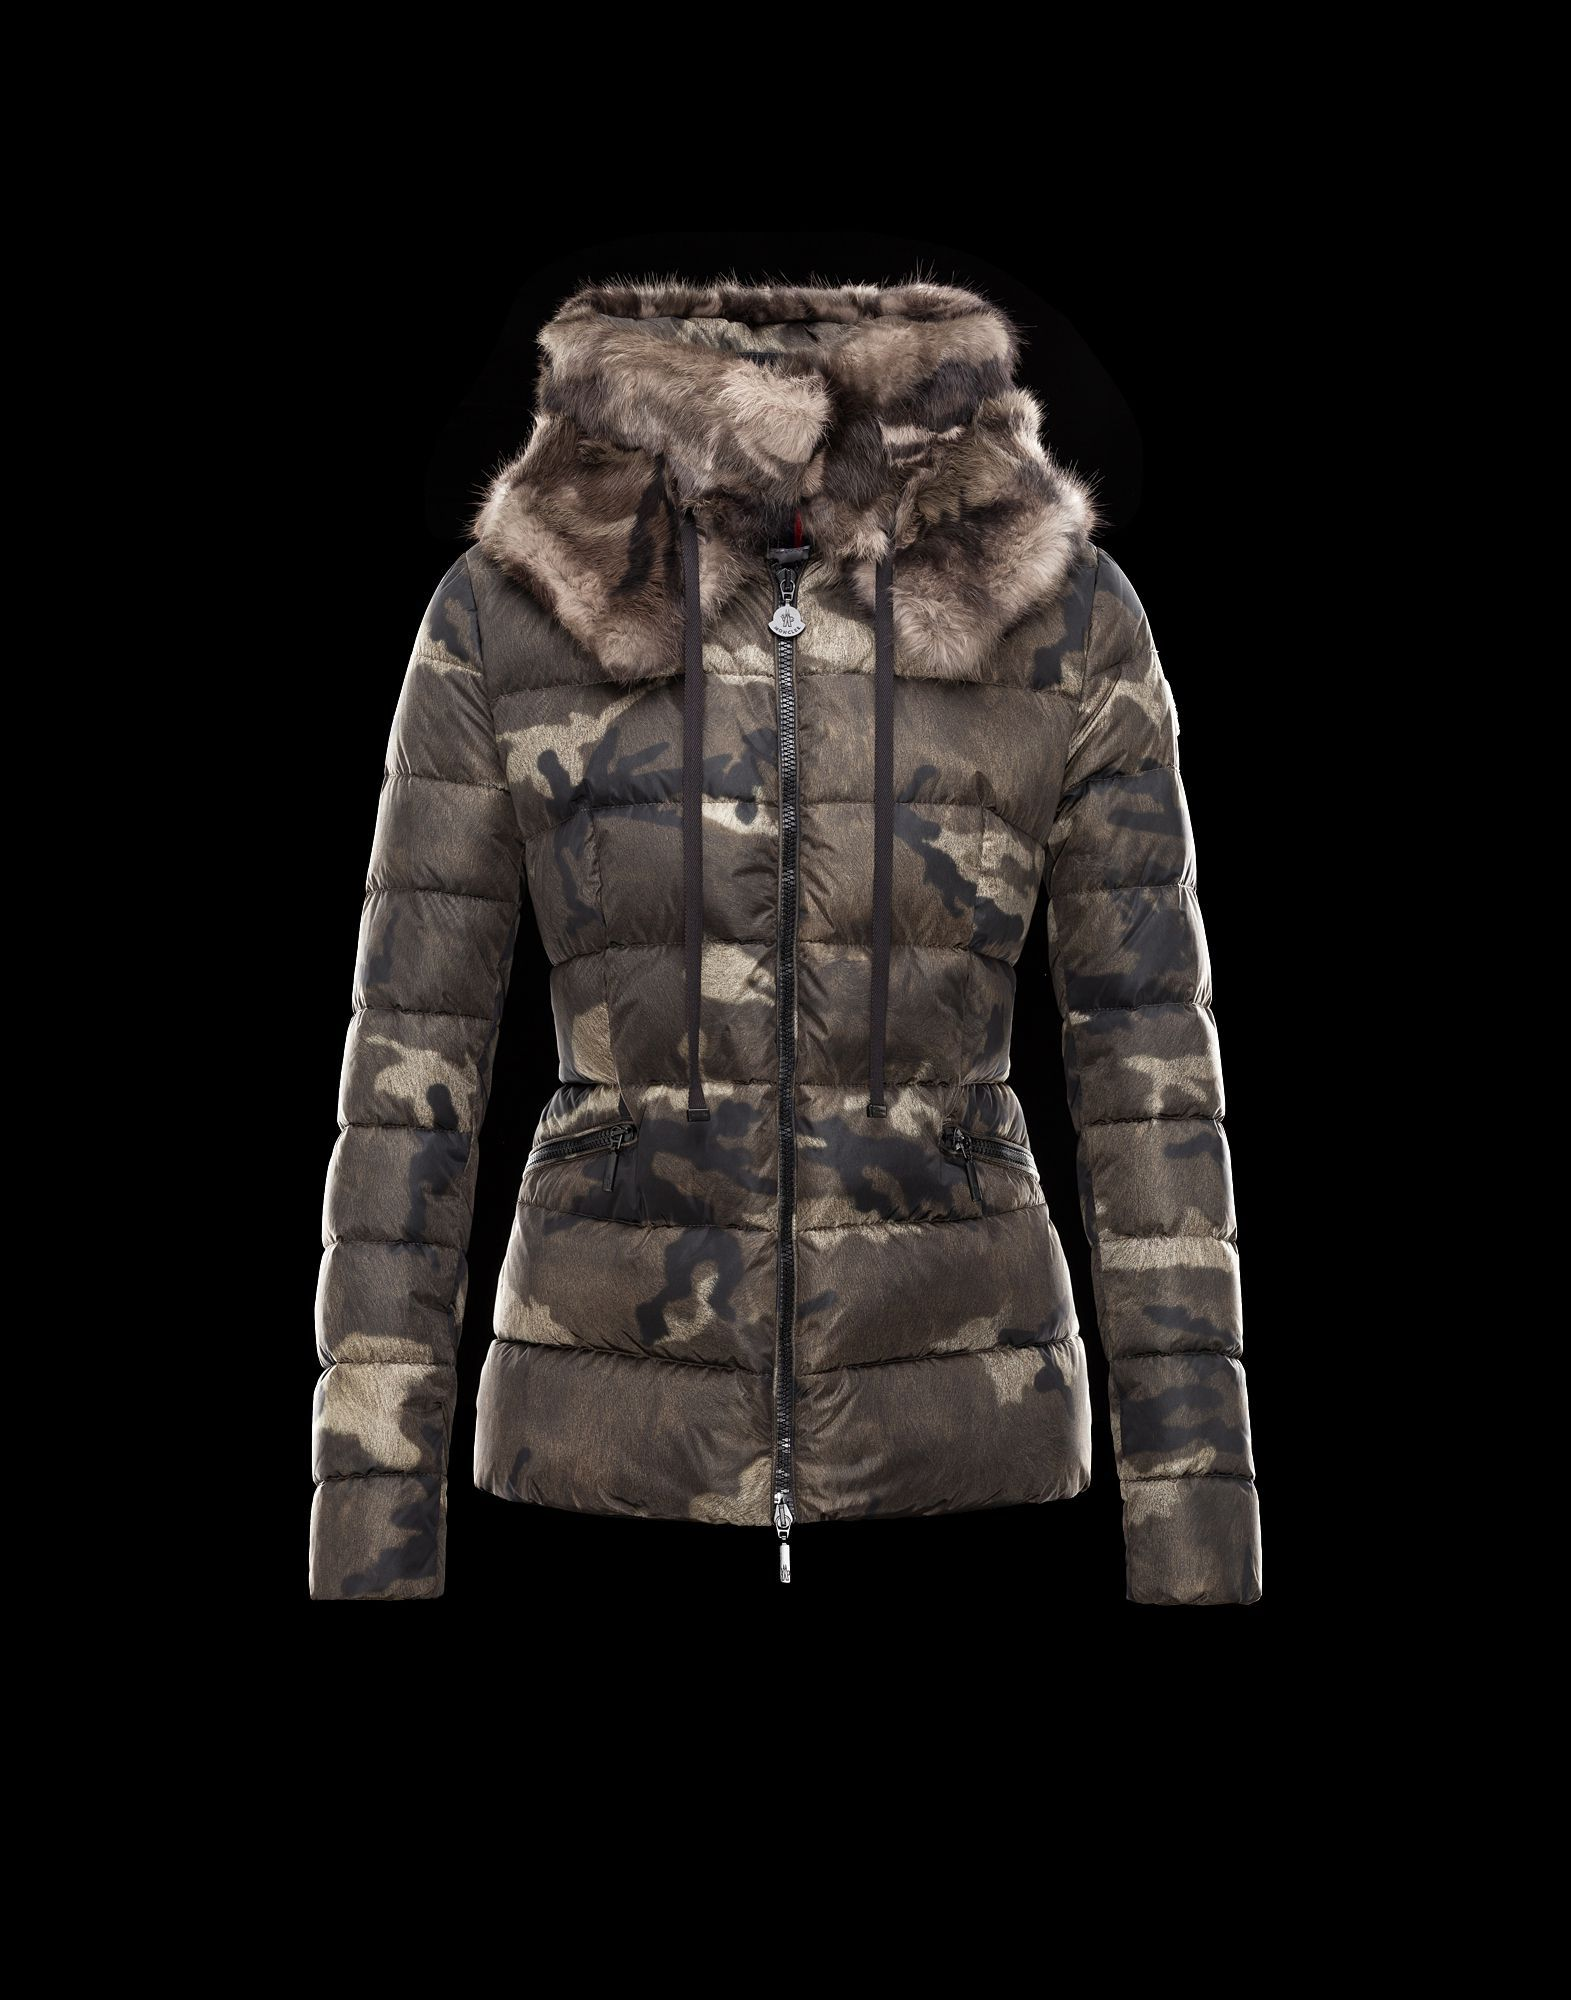 50cfebc9f Moncler Online Store - Bonlieu Jacket with camouflage print ...